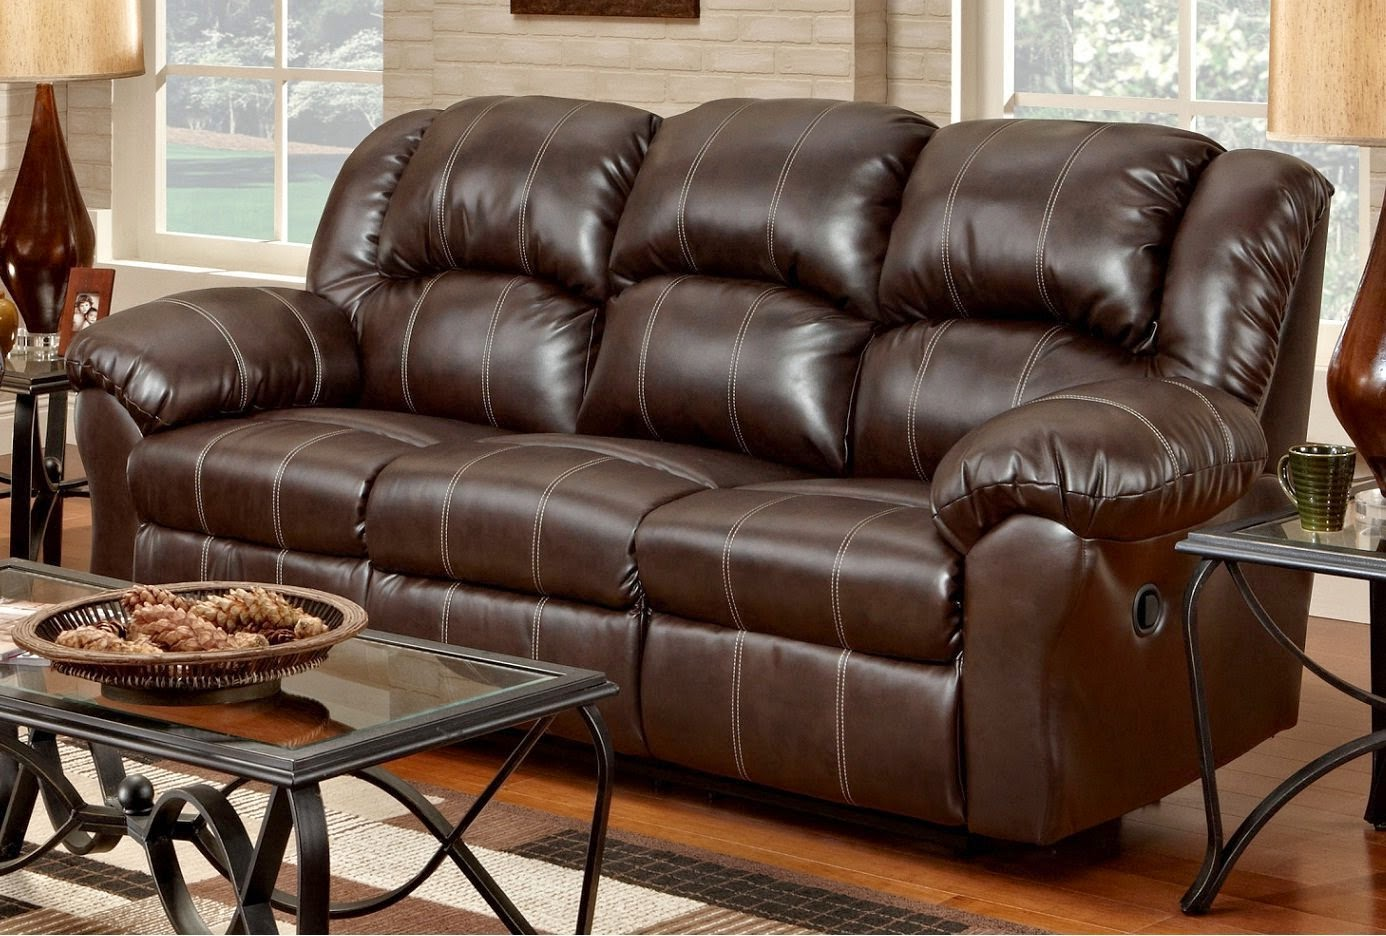 Best Leather Reclining Sofa Brands Reviews Alpha Leather